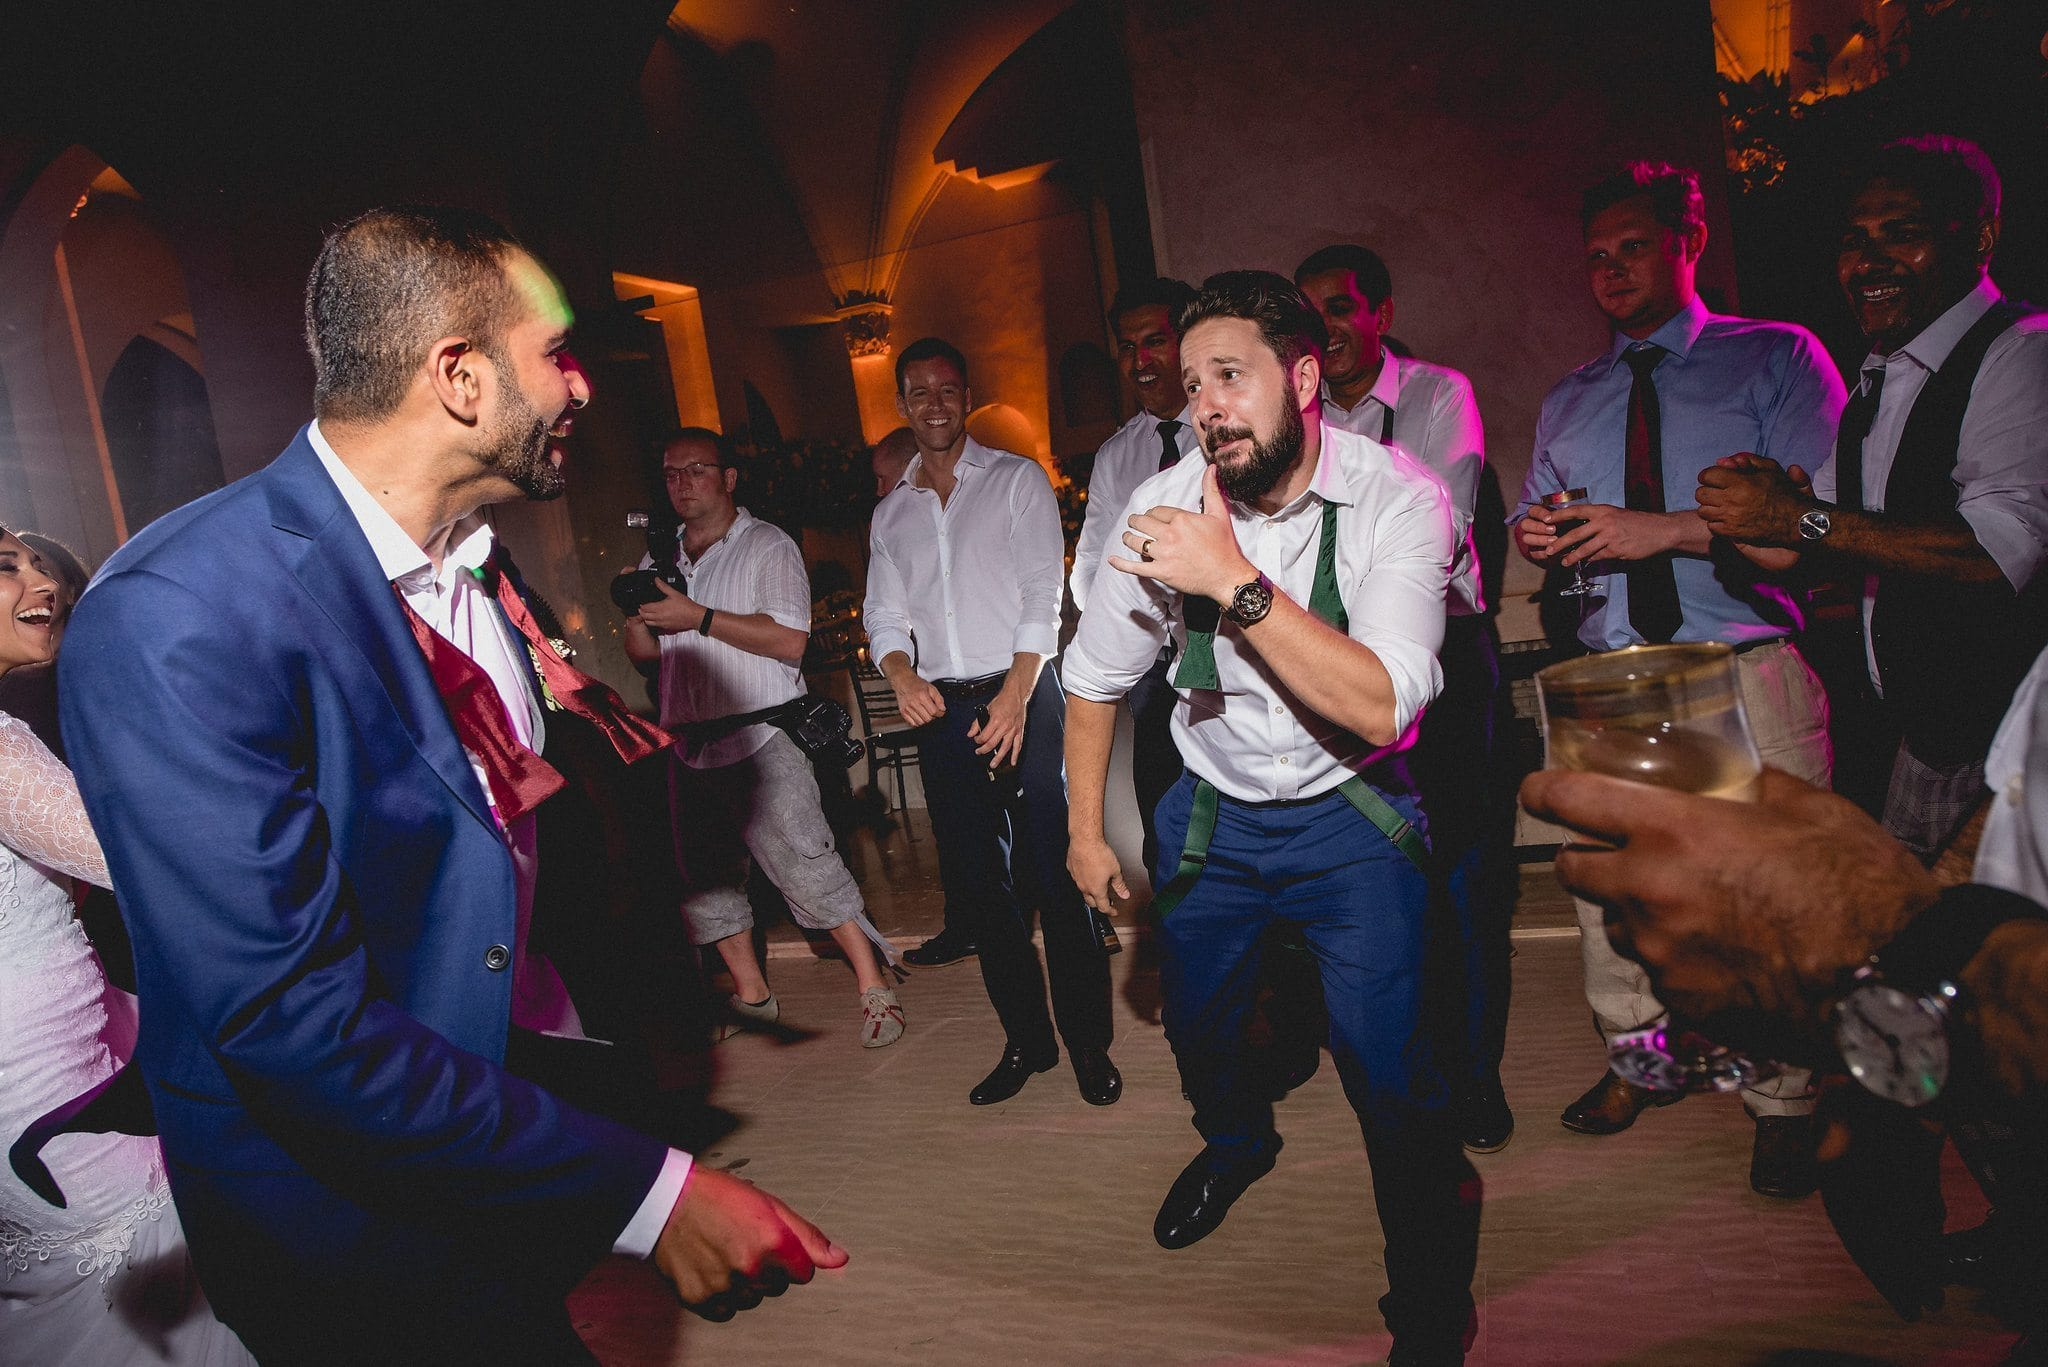 A challenge is thrown down for a dance off between a groomsman and the groom at Ksar Char Bagh